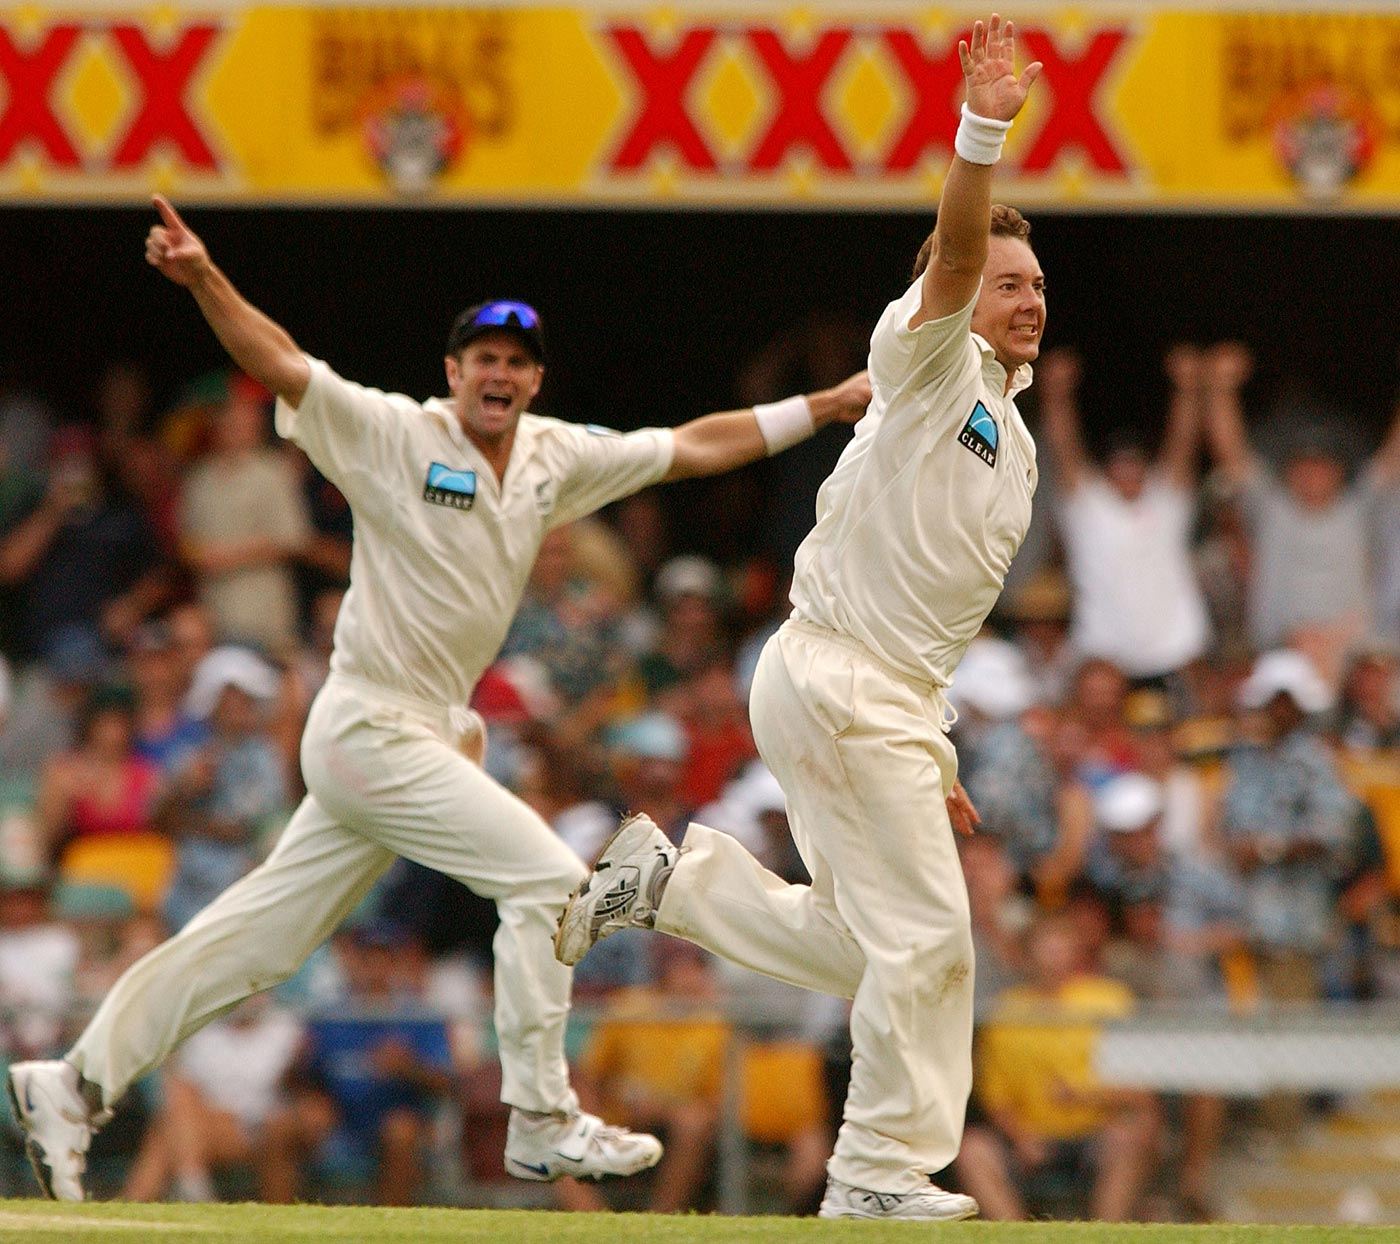 The old firm: Cairns and McMillan made 172 runs and took nine wickets between them in the match